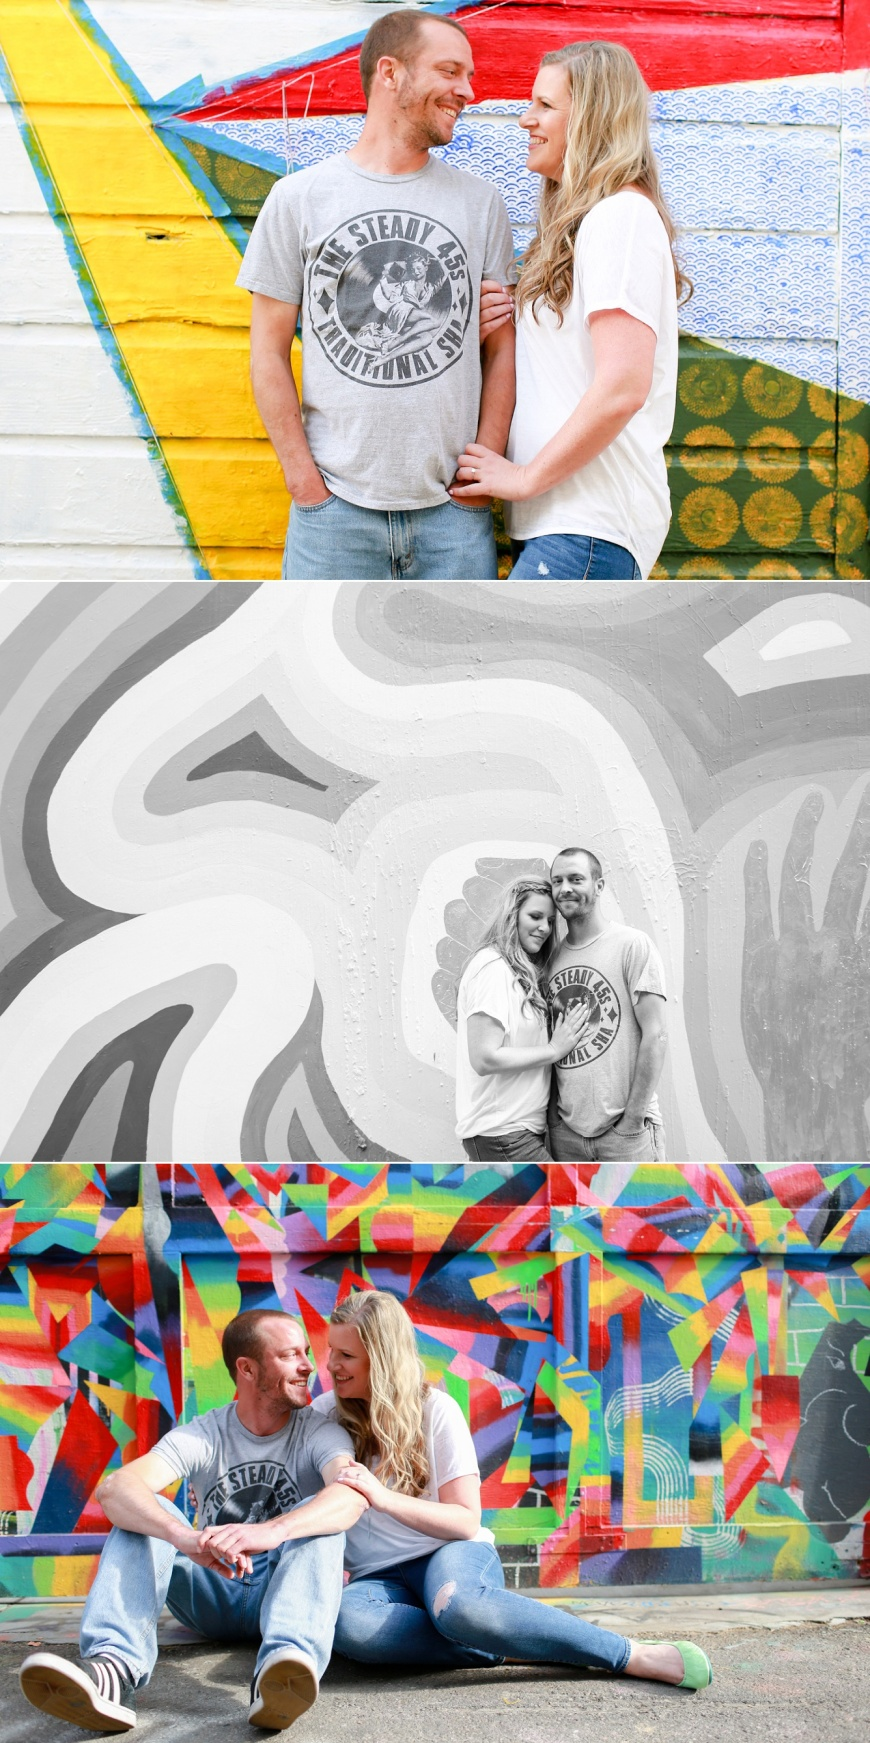 Urban-SF-San-Francisco-Engagement_1015.jpg